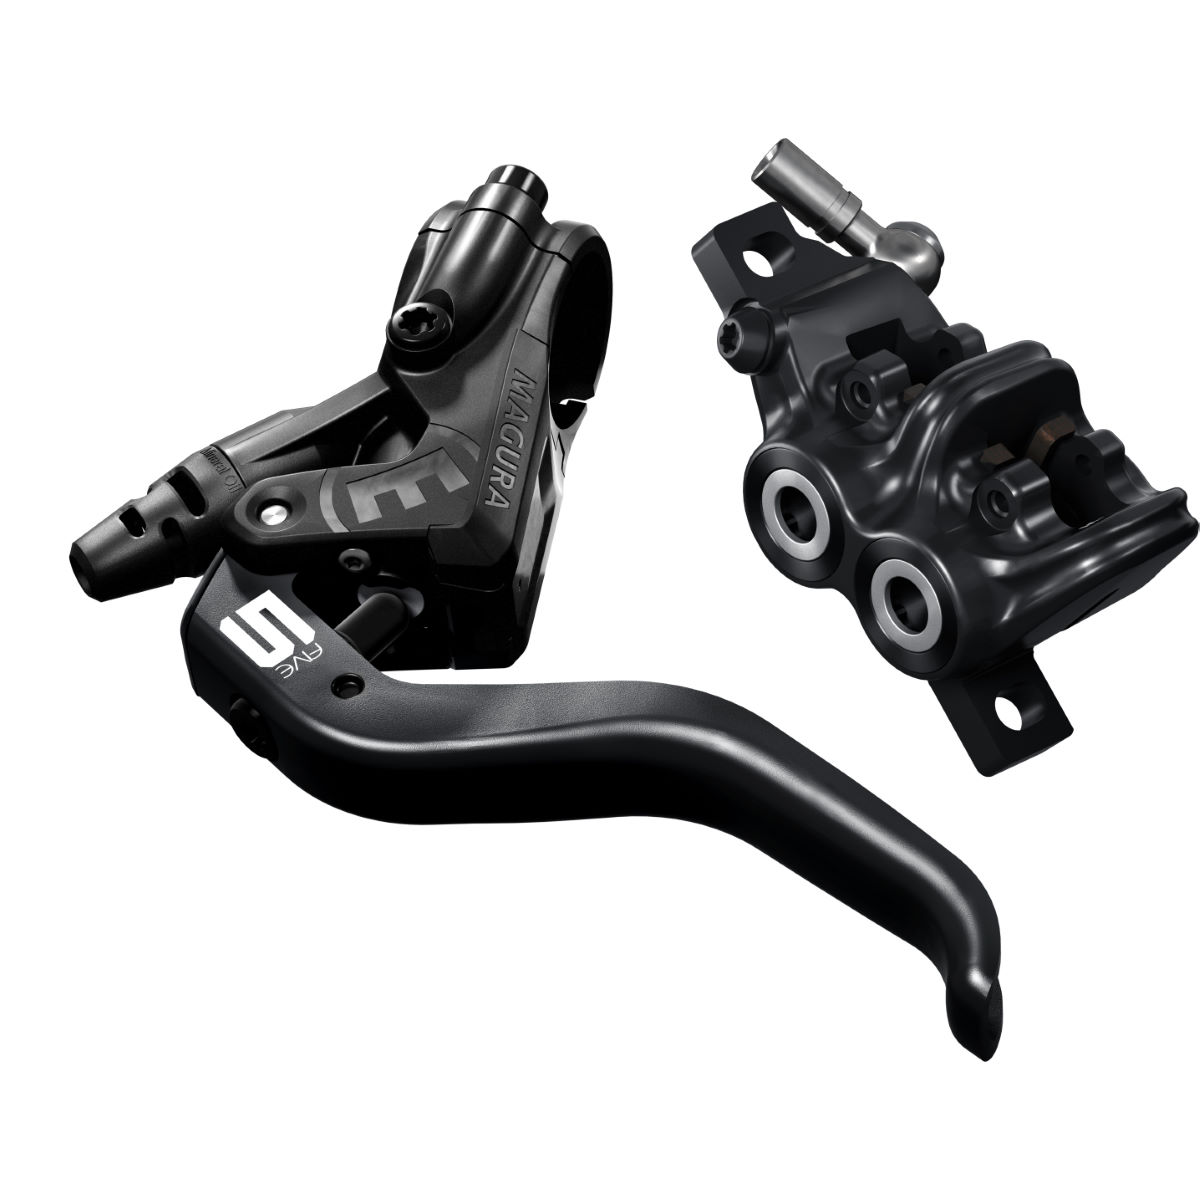 Magura MT5 MTB Disc Brake - Frenos de disco